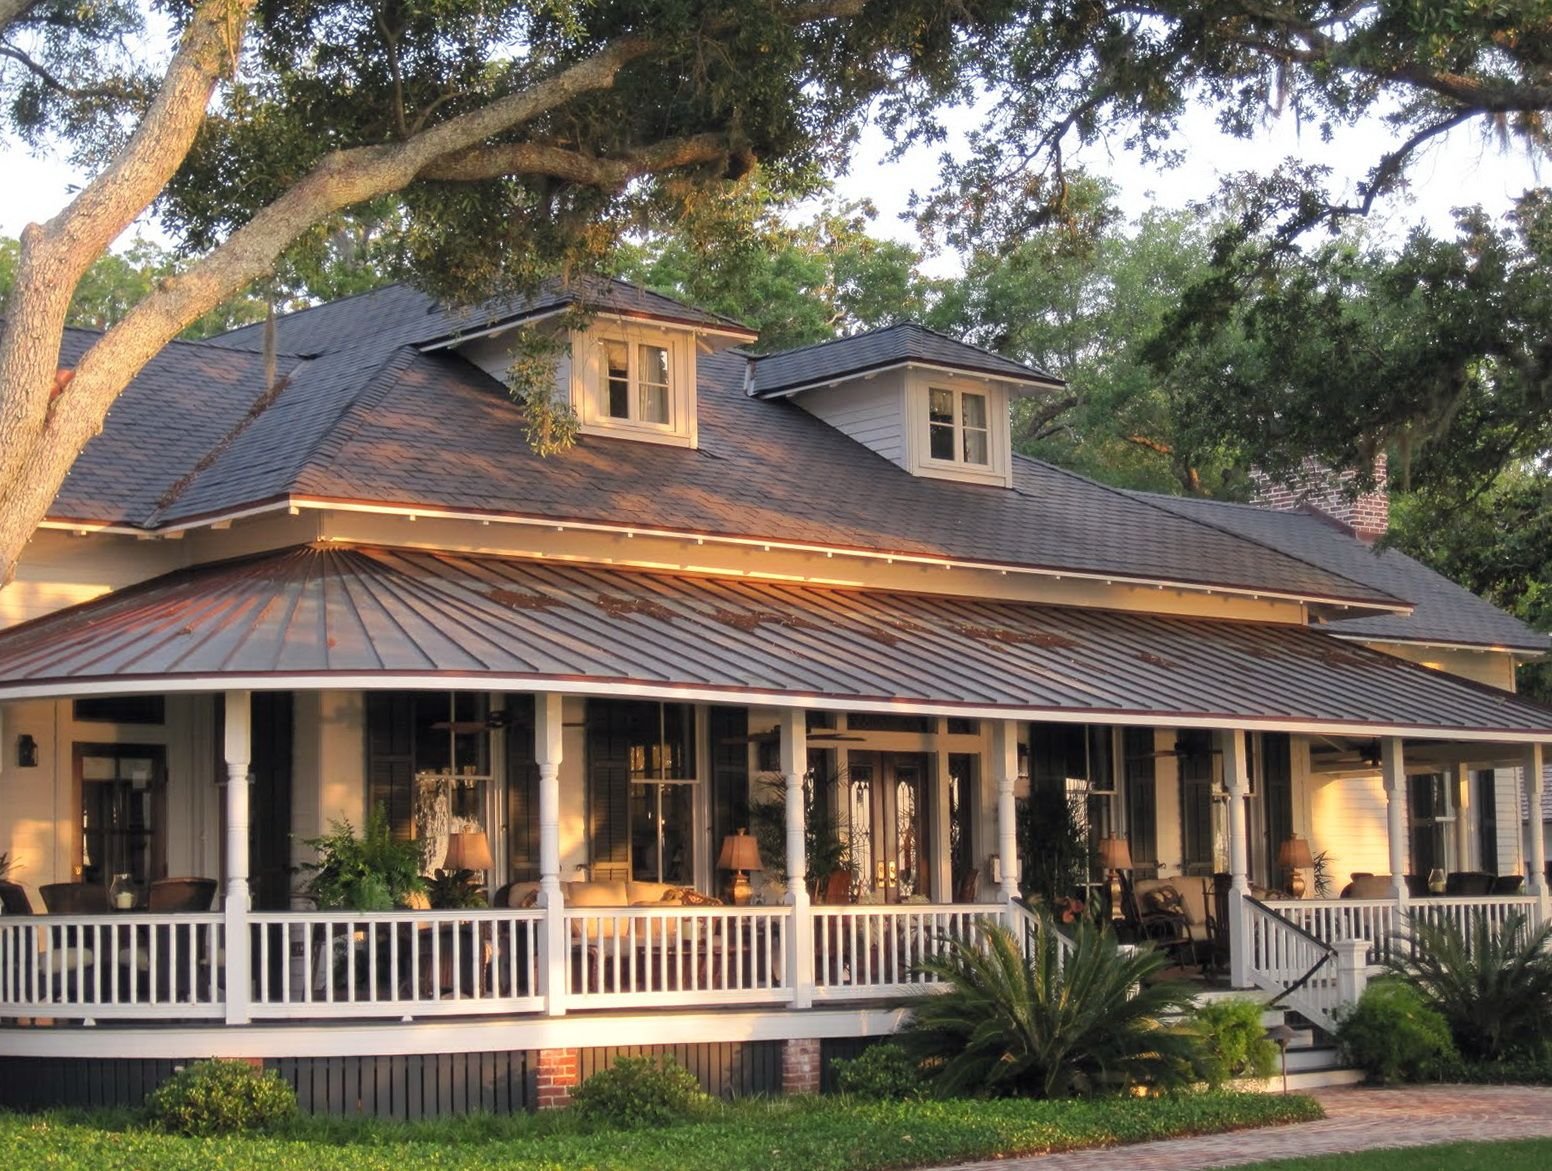 Ranch House Plans With Front Porch Country Style House Plans Porch House Plans Country Cottage House Plans